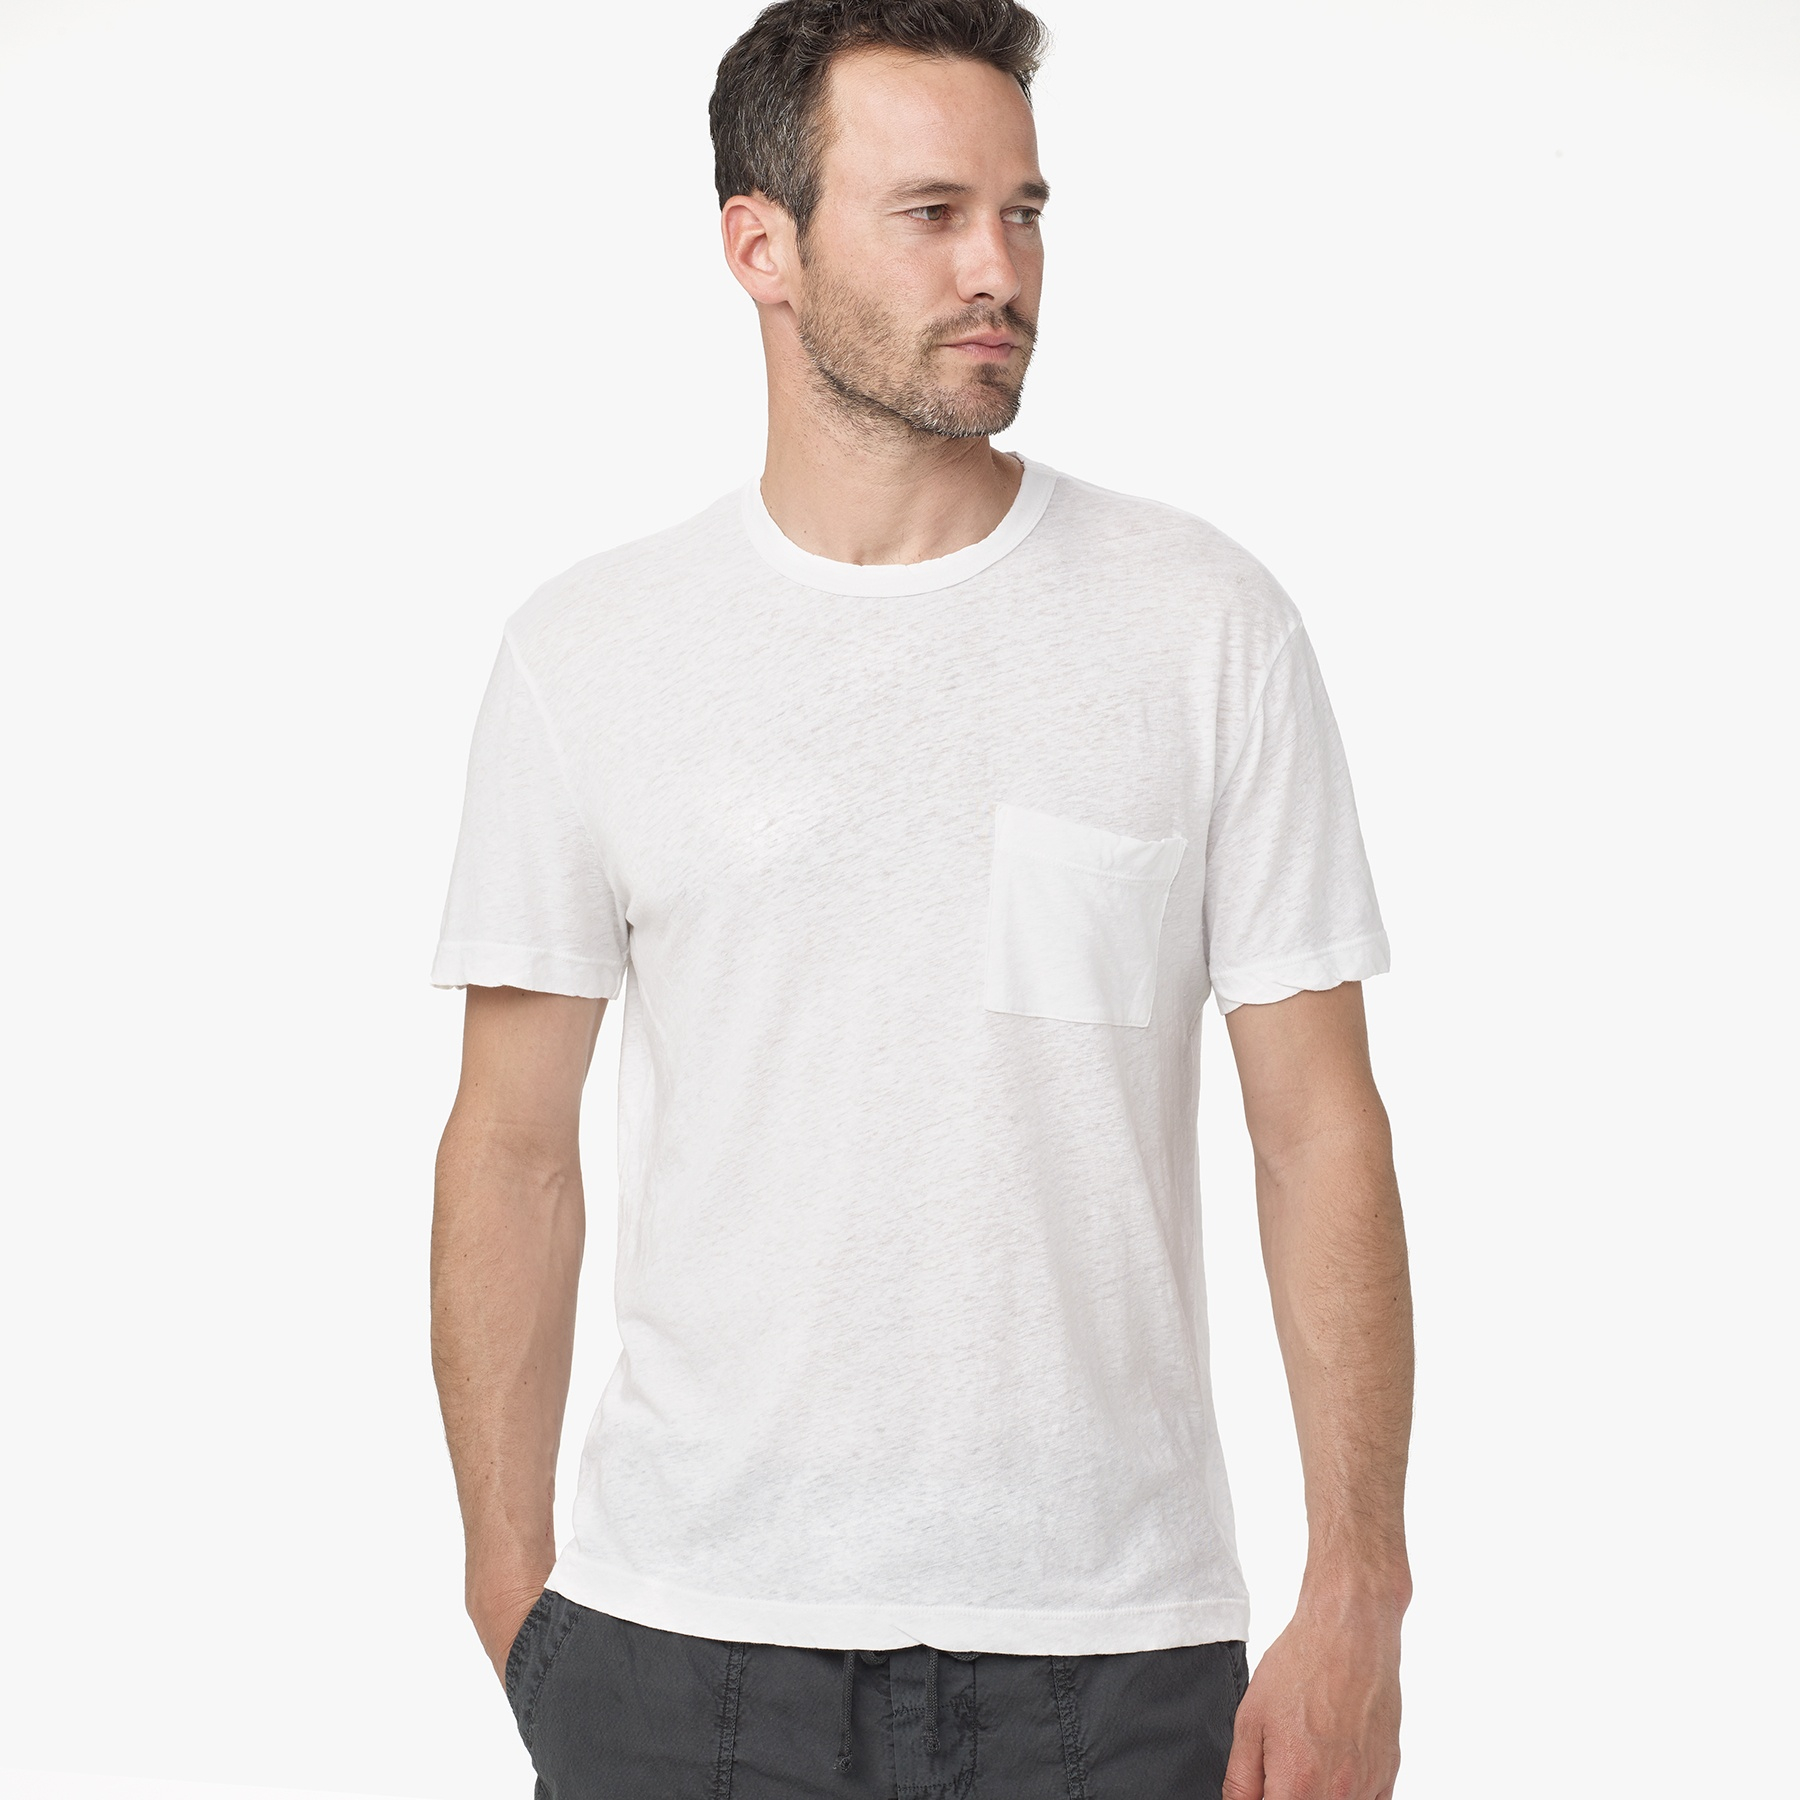 James perse linen cotton pocket graphic tee in white for for James perse t shirts sale